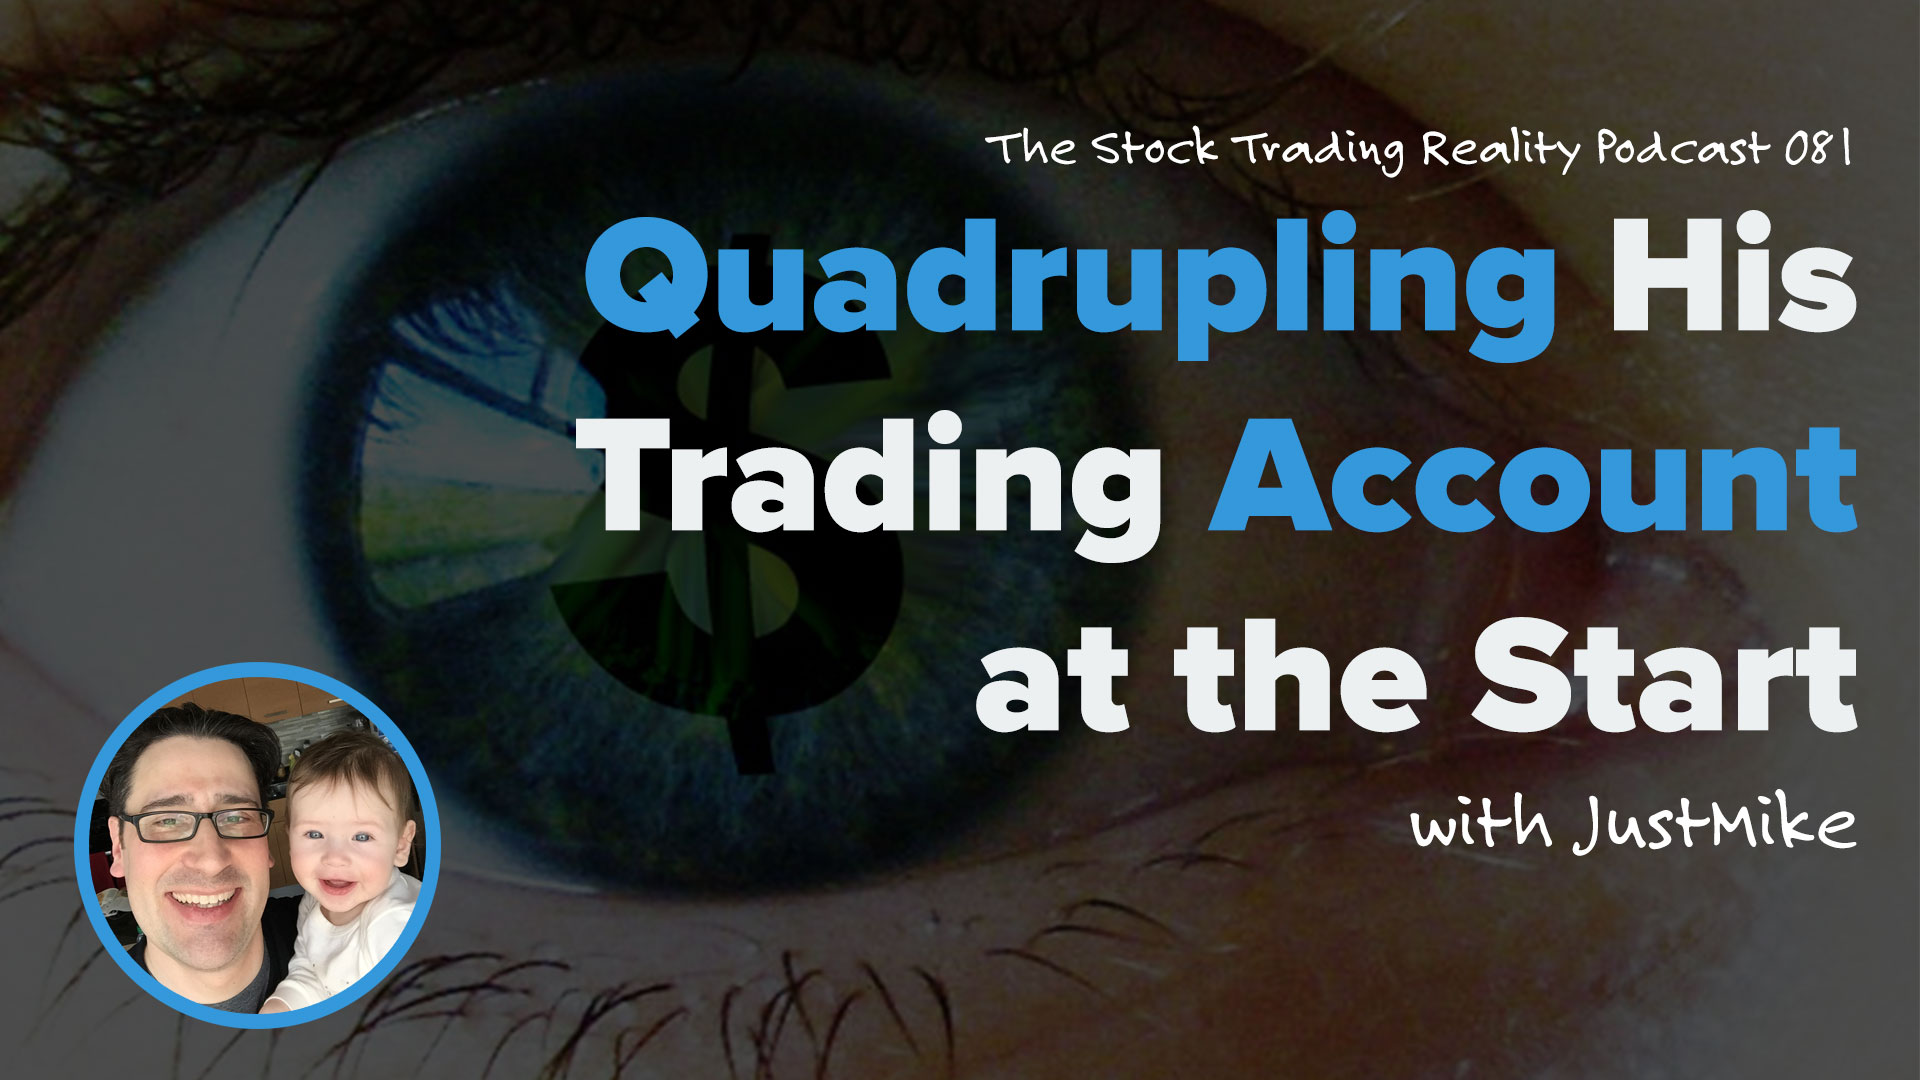 STR 081: Quadrupling His Trading Account at the Start